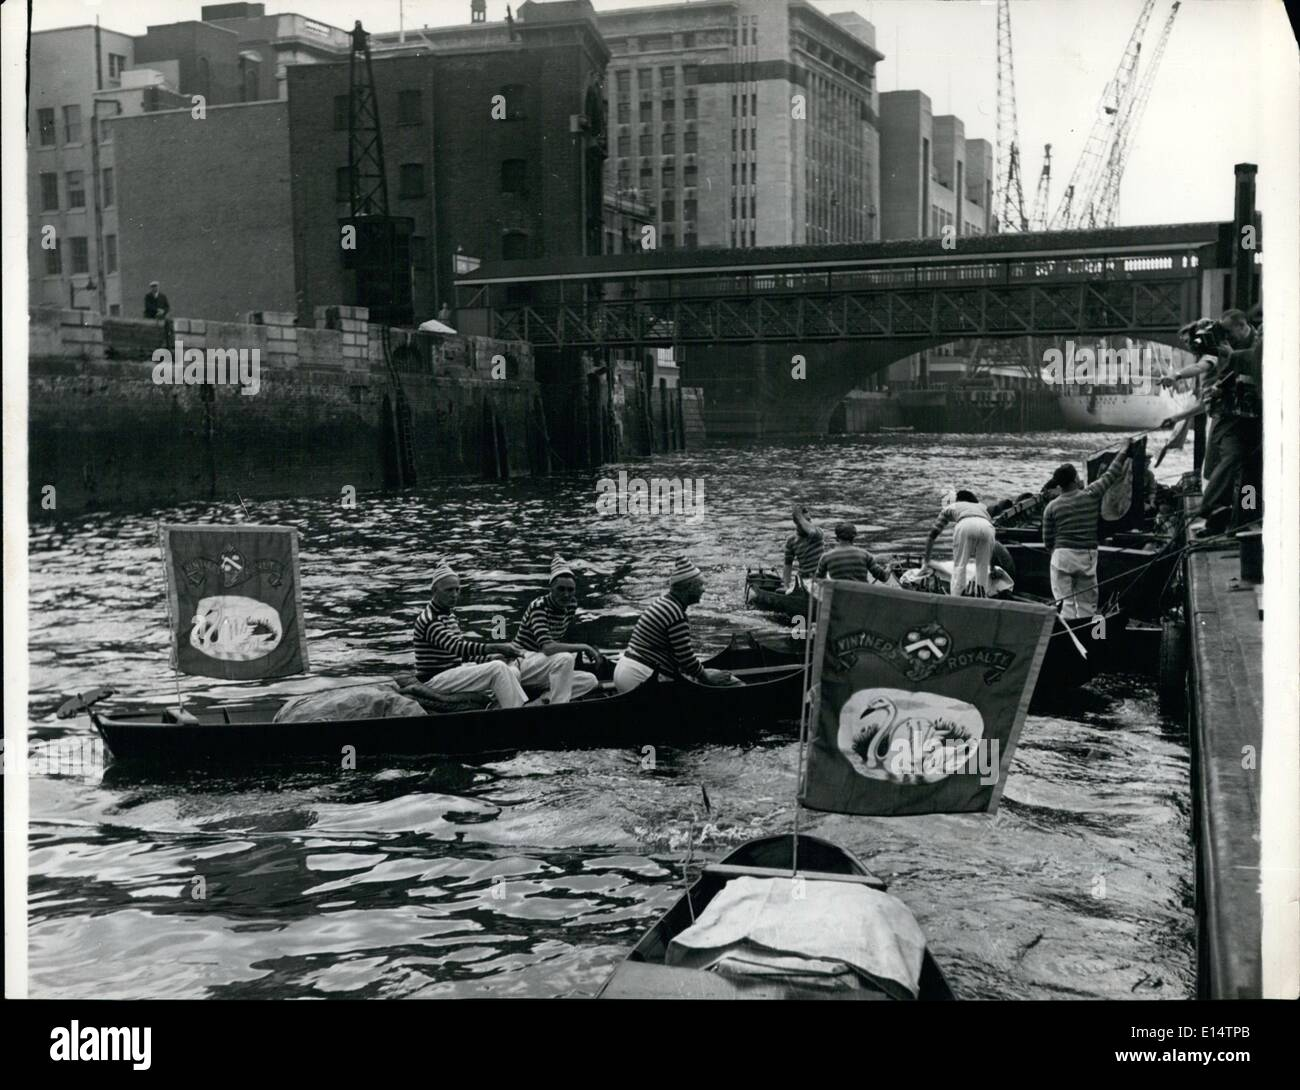 Apr. 18, 2012 - SWAN UPPING: The busy scene at Old Swan Pier, London Bridge as Swan Uppers is boats flying the pennants of the Vintners and Dyers Company prepare for the annual ceremony of marking the new cygnets. - Stock Image